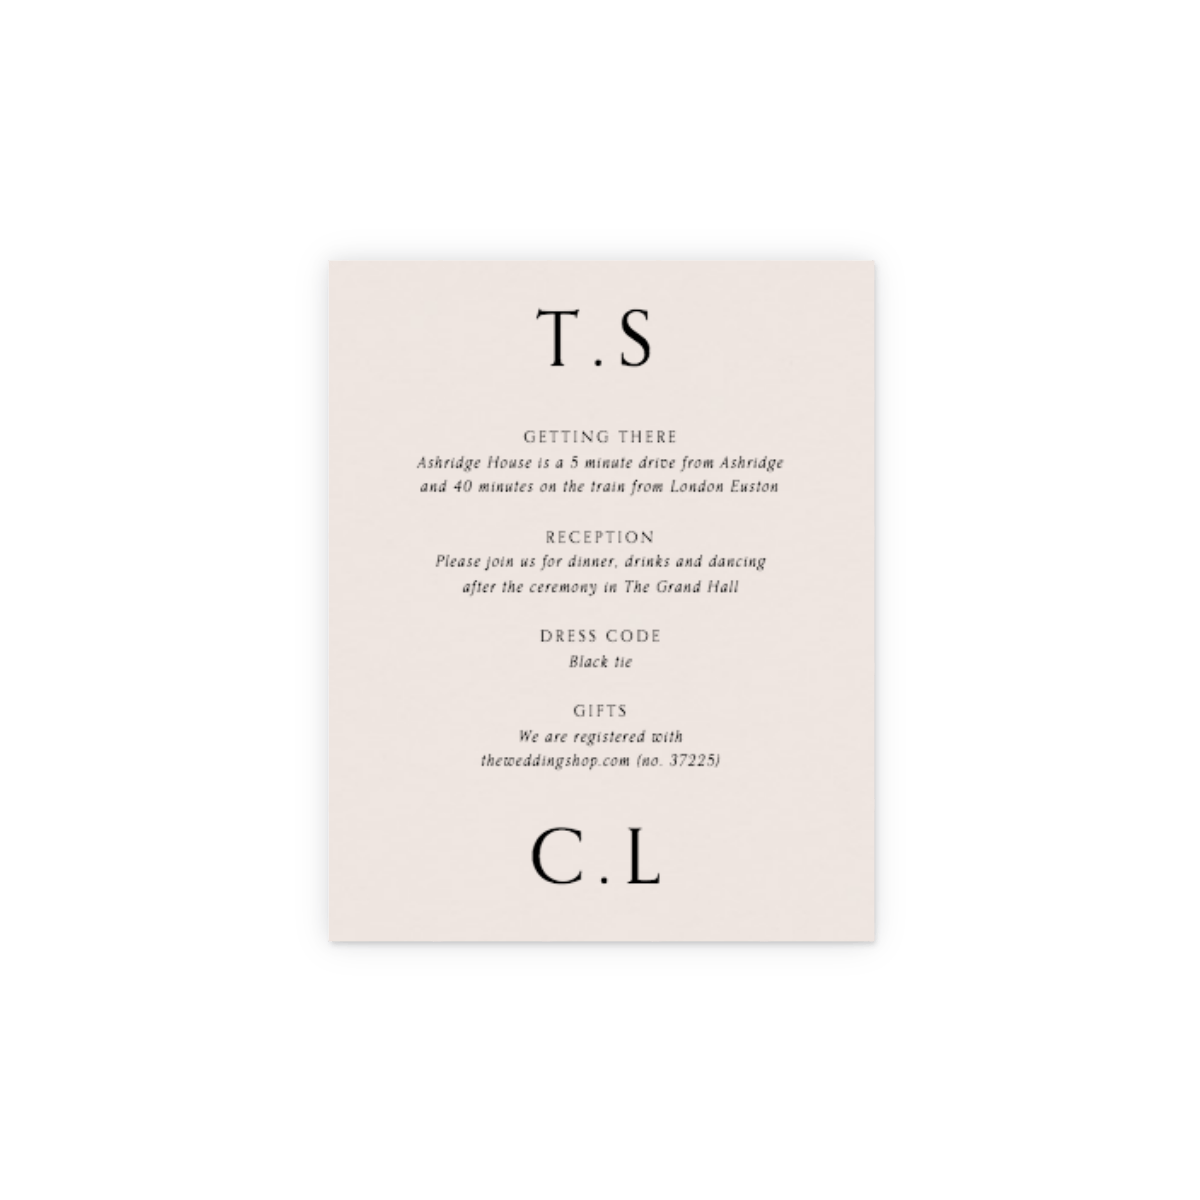 Https%3a%2f%2fwww.papier.com%2fproduct image%2f61492%2f9%2fclassical monogram 14633 info card 1549034704.png?ixlib=rb 1.1